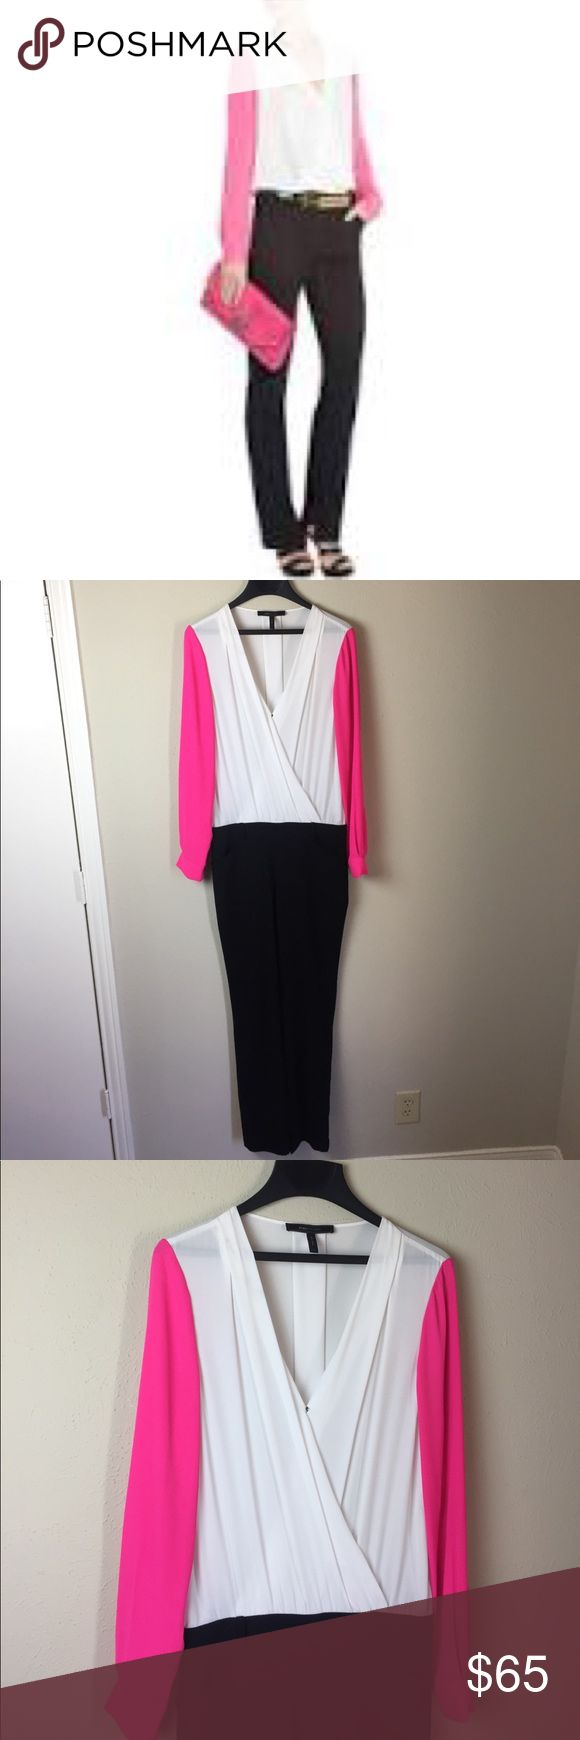 """BCBGMaxAzria Remington Color Block Jumpsuit Color block jumpsuit with white on top, black pants, and pink sleeves. It has belt loops, slits at the bottom of the pants, and button close cuffs. Wrap style front with a snap close to keep everything tucked away. 😄 There is one tiny spot on the top left of the white area (please see pic #7). 23"""" armpit to armpit. Waist of pants is 16"""" across. 64"""" in length. BCBGMaxAzria Pants Jumpsuits & Rompers"""